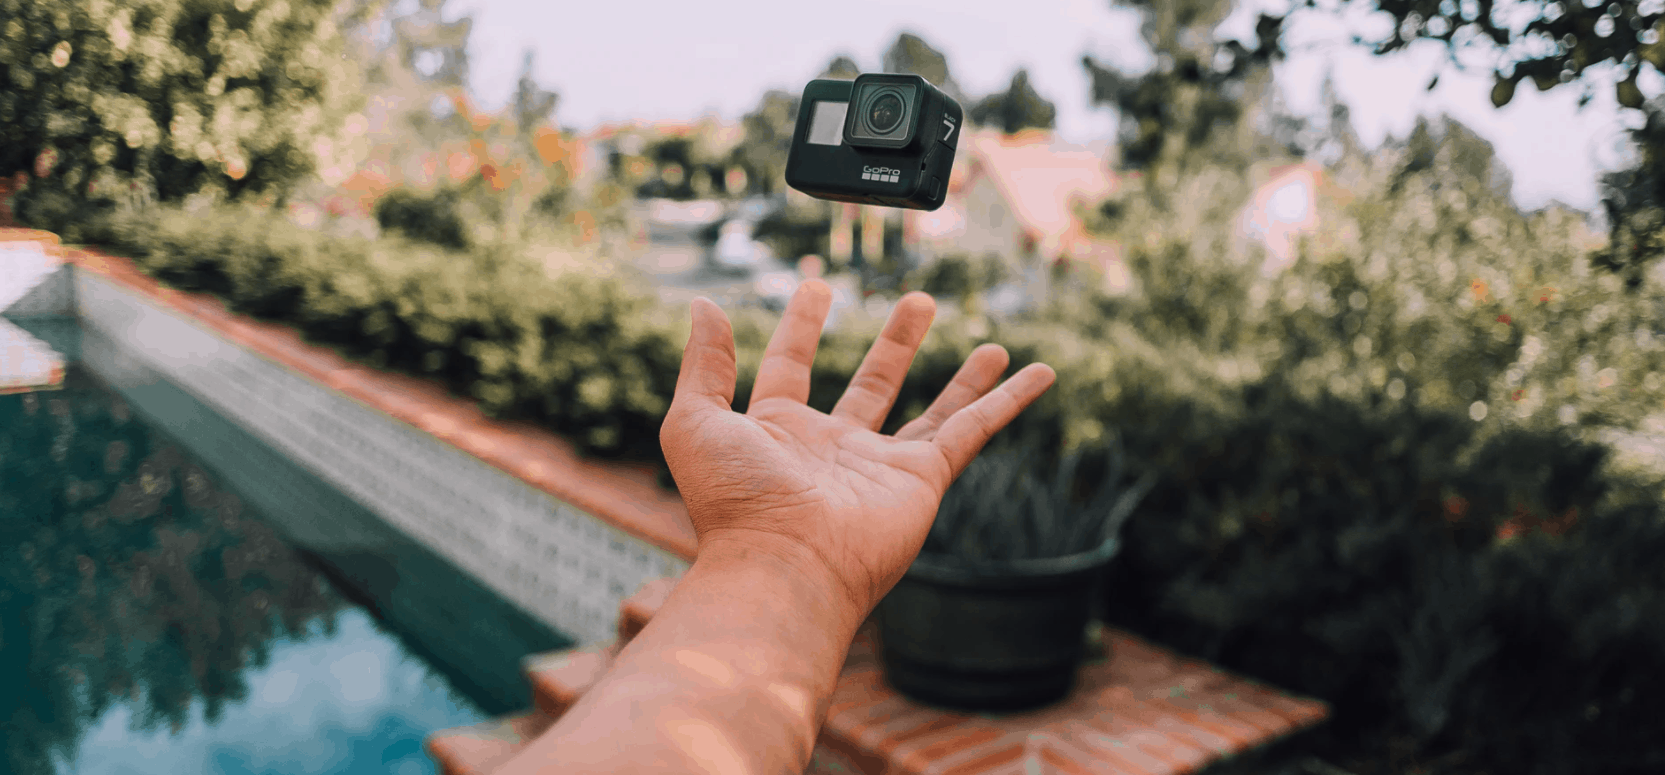 Cheaper Alternatives to GoPro Action Camera, 5 Best Cameras Like GoPro: Cheaper Alternatives, Is there a cheaper alternative to GoPro?, their recording functions are commendable, being able to record up to 30 fps at this resolution., Is there anything better than GoPro?, What is the best cheap action camera?, What is the best knock off GoPro?